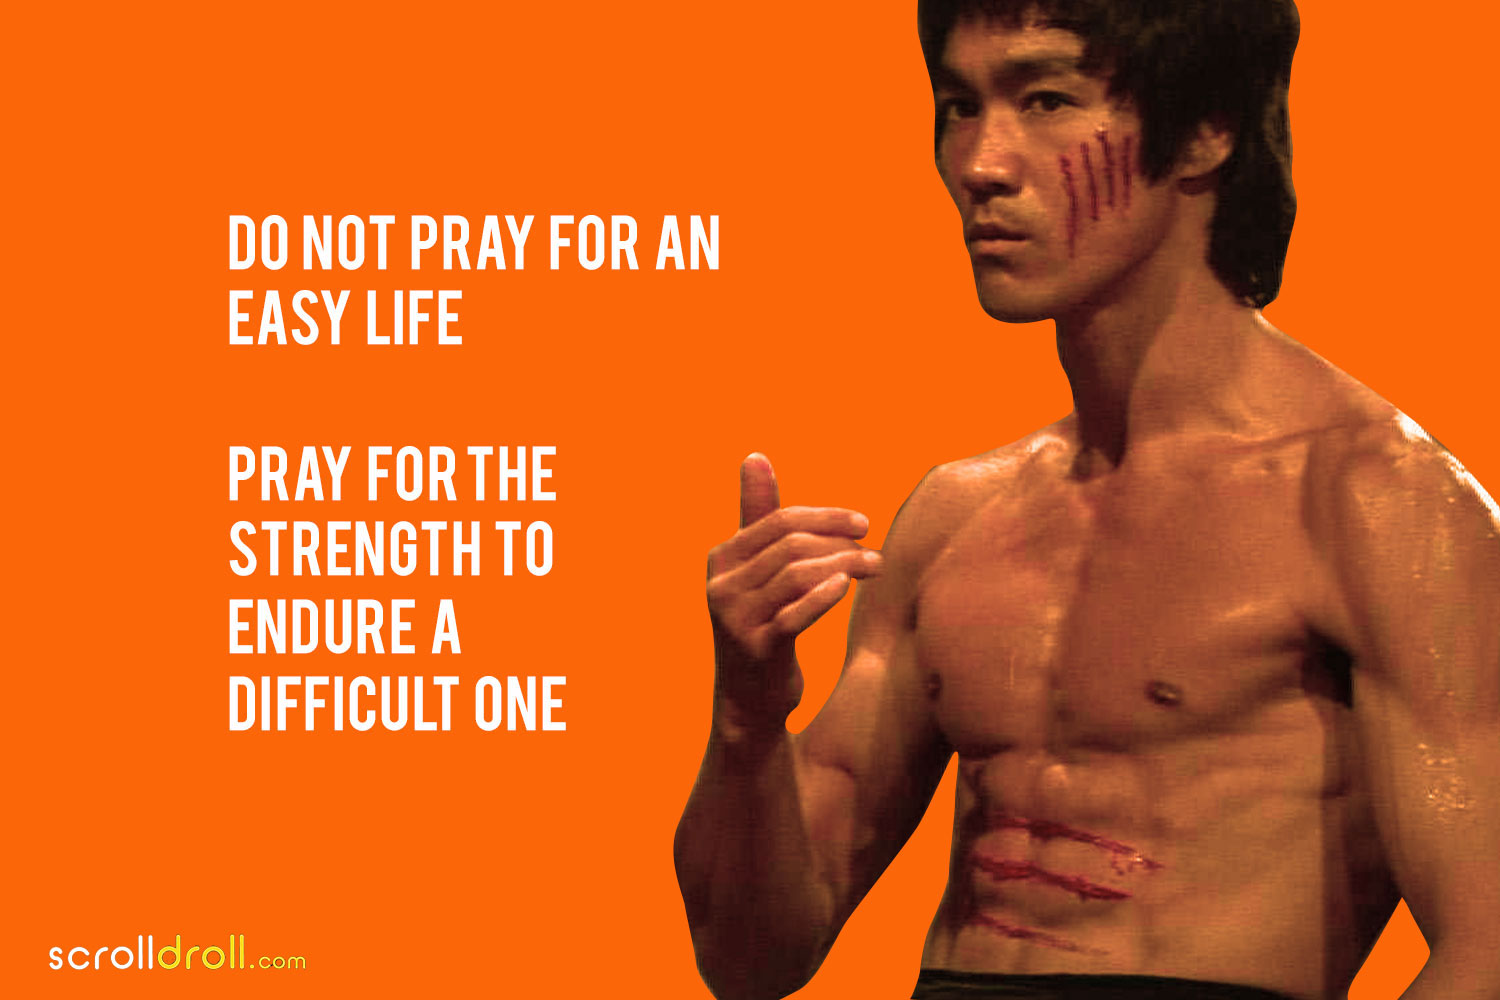 bruce lee quotes 10 - Stories for the Youth!